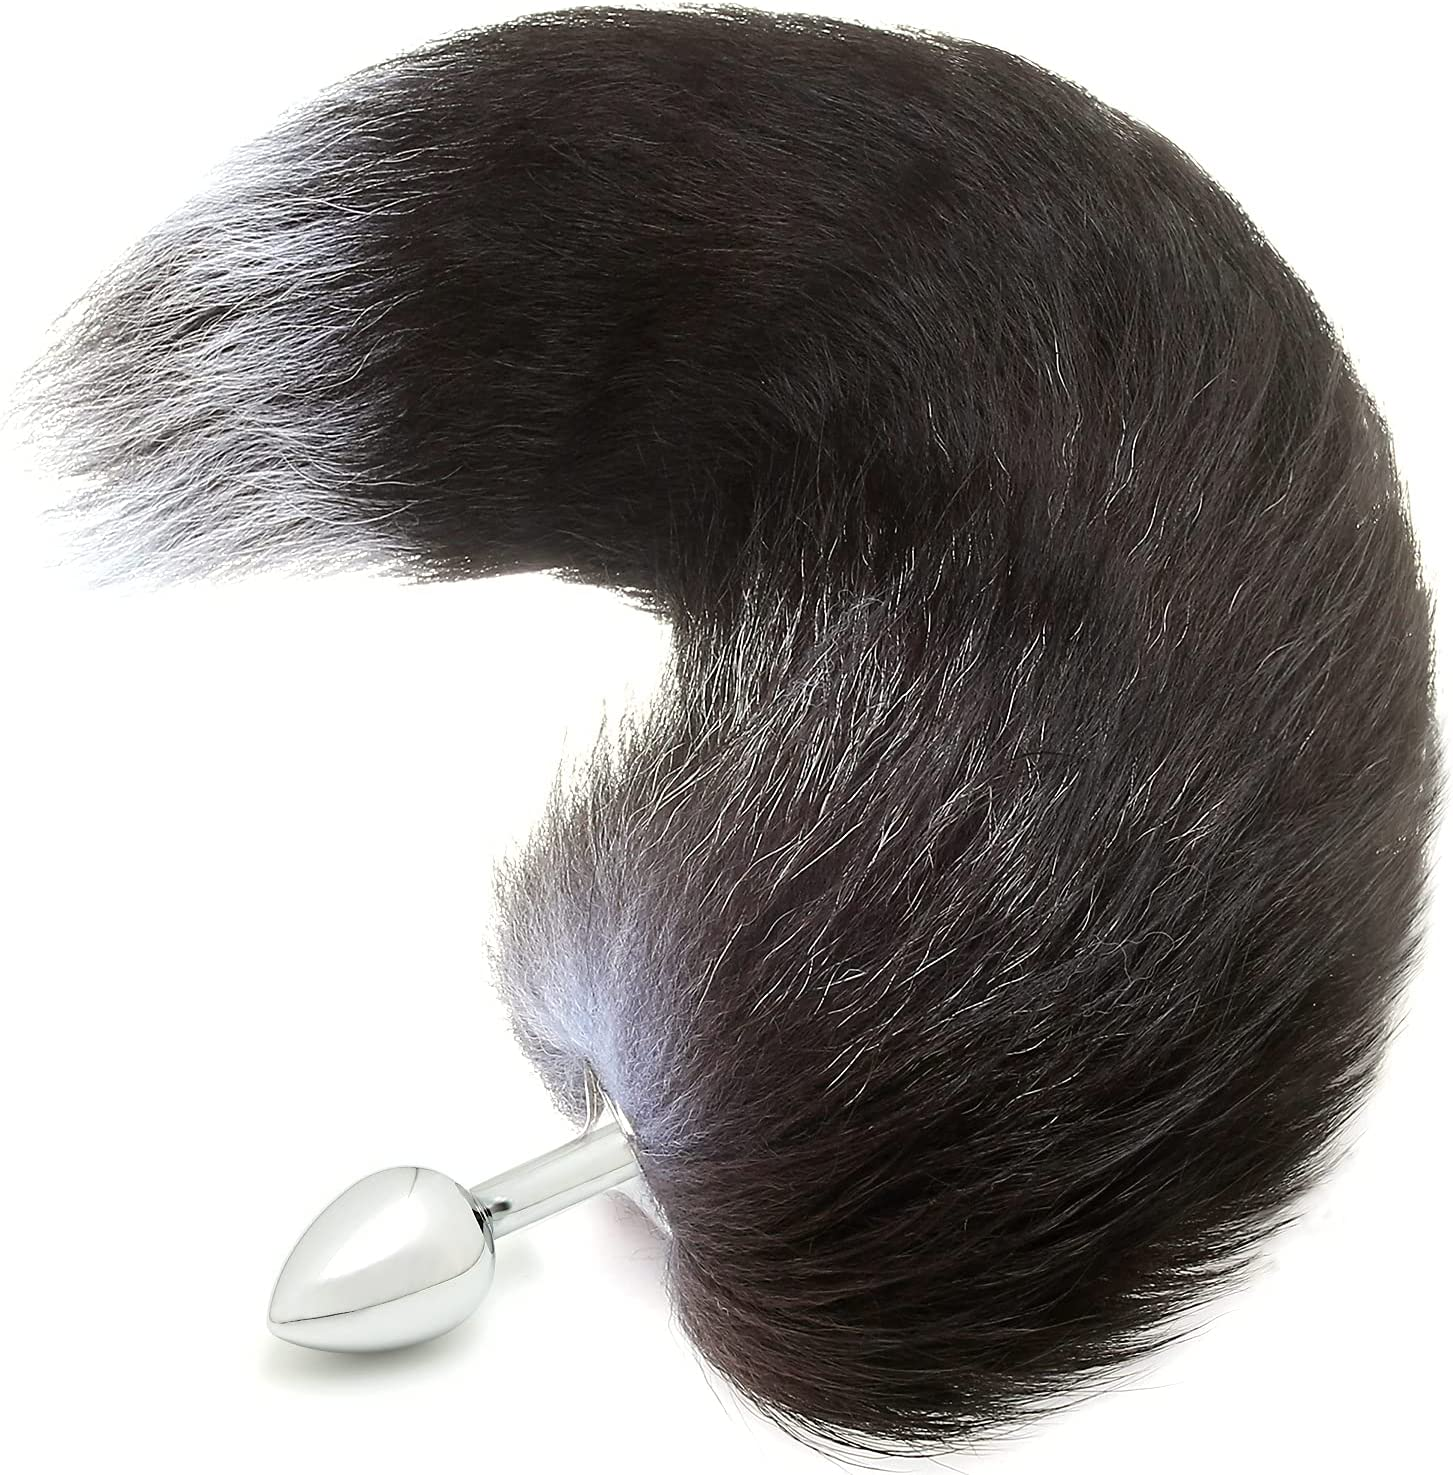 Finally resale start AKStore Small Stainless Steel Fox's Tail's Butt Anal New mail order T Plug